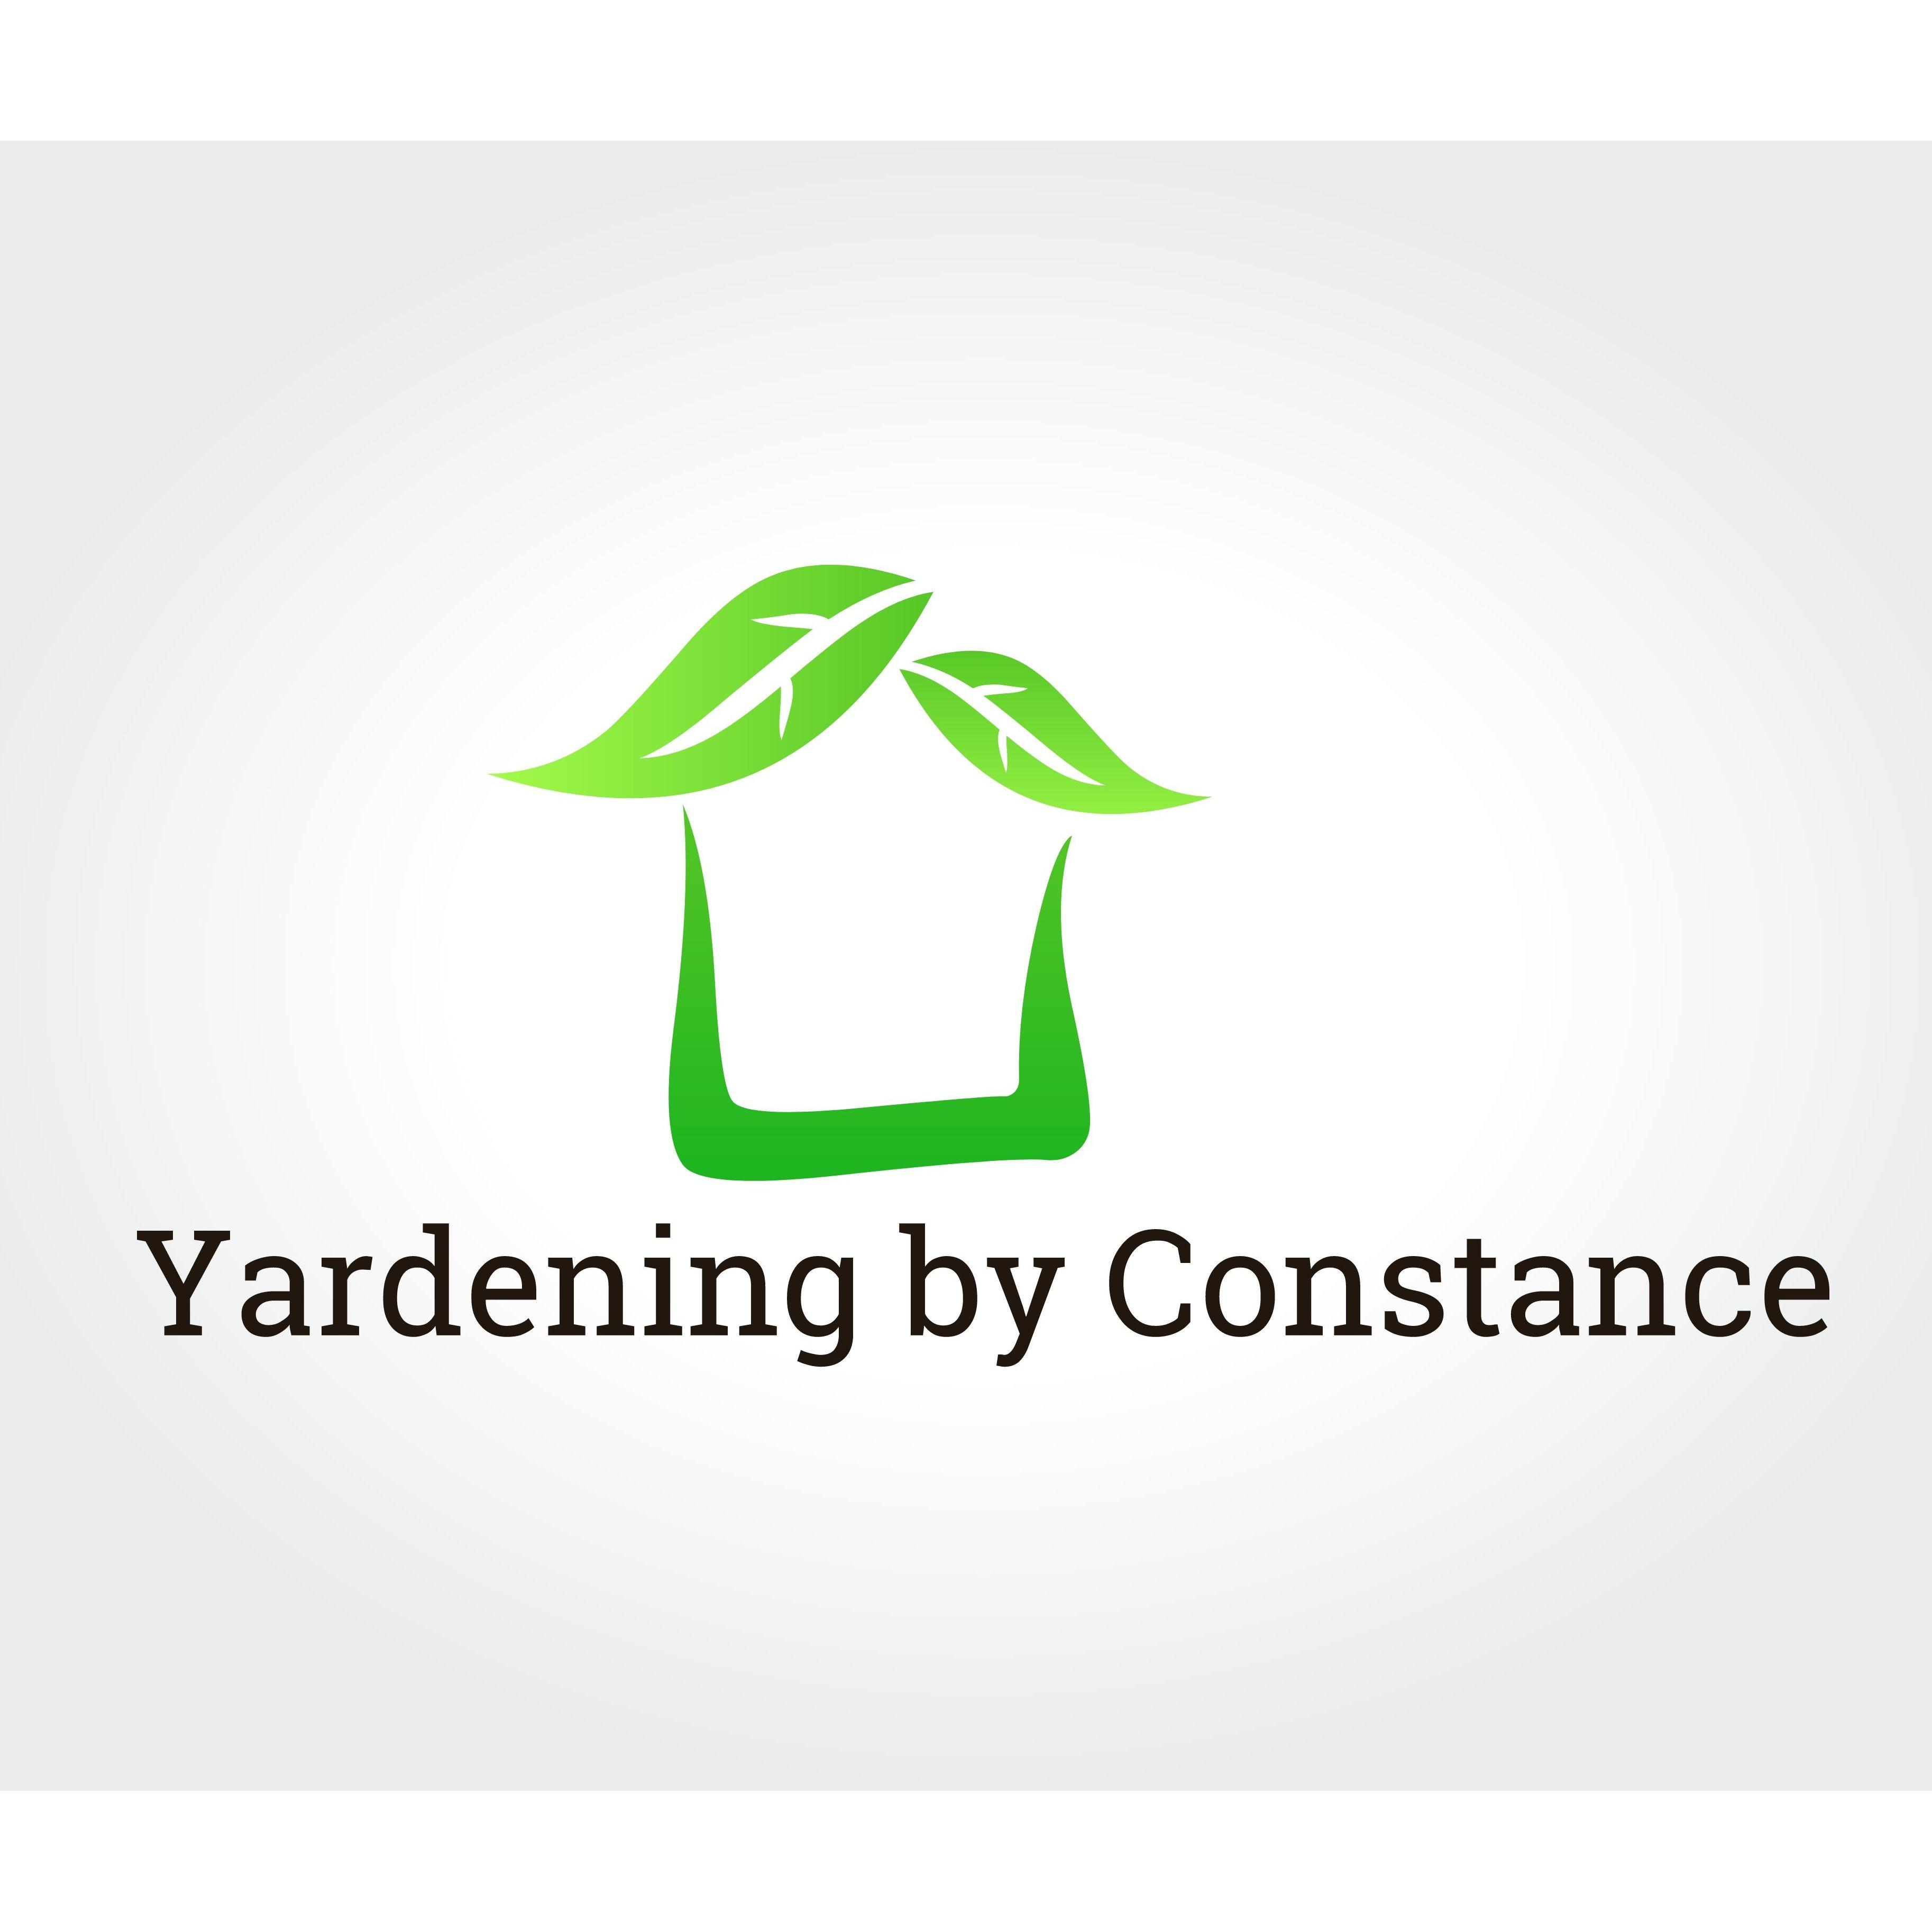 Yardening by Constance